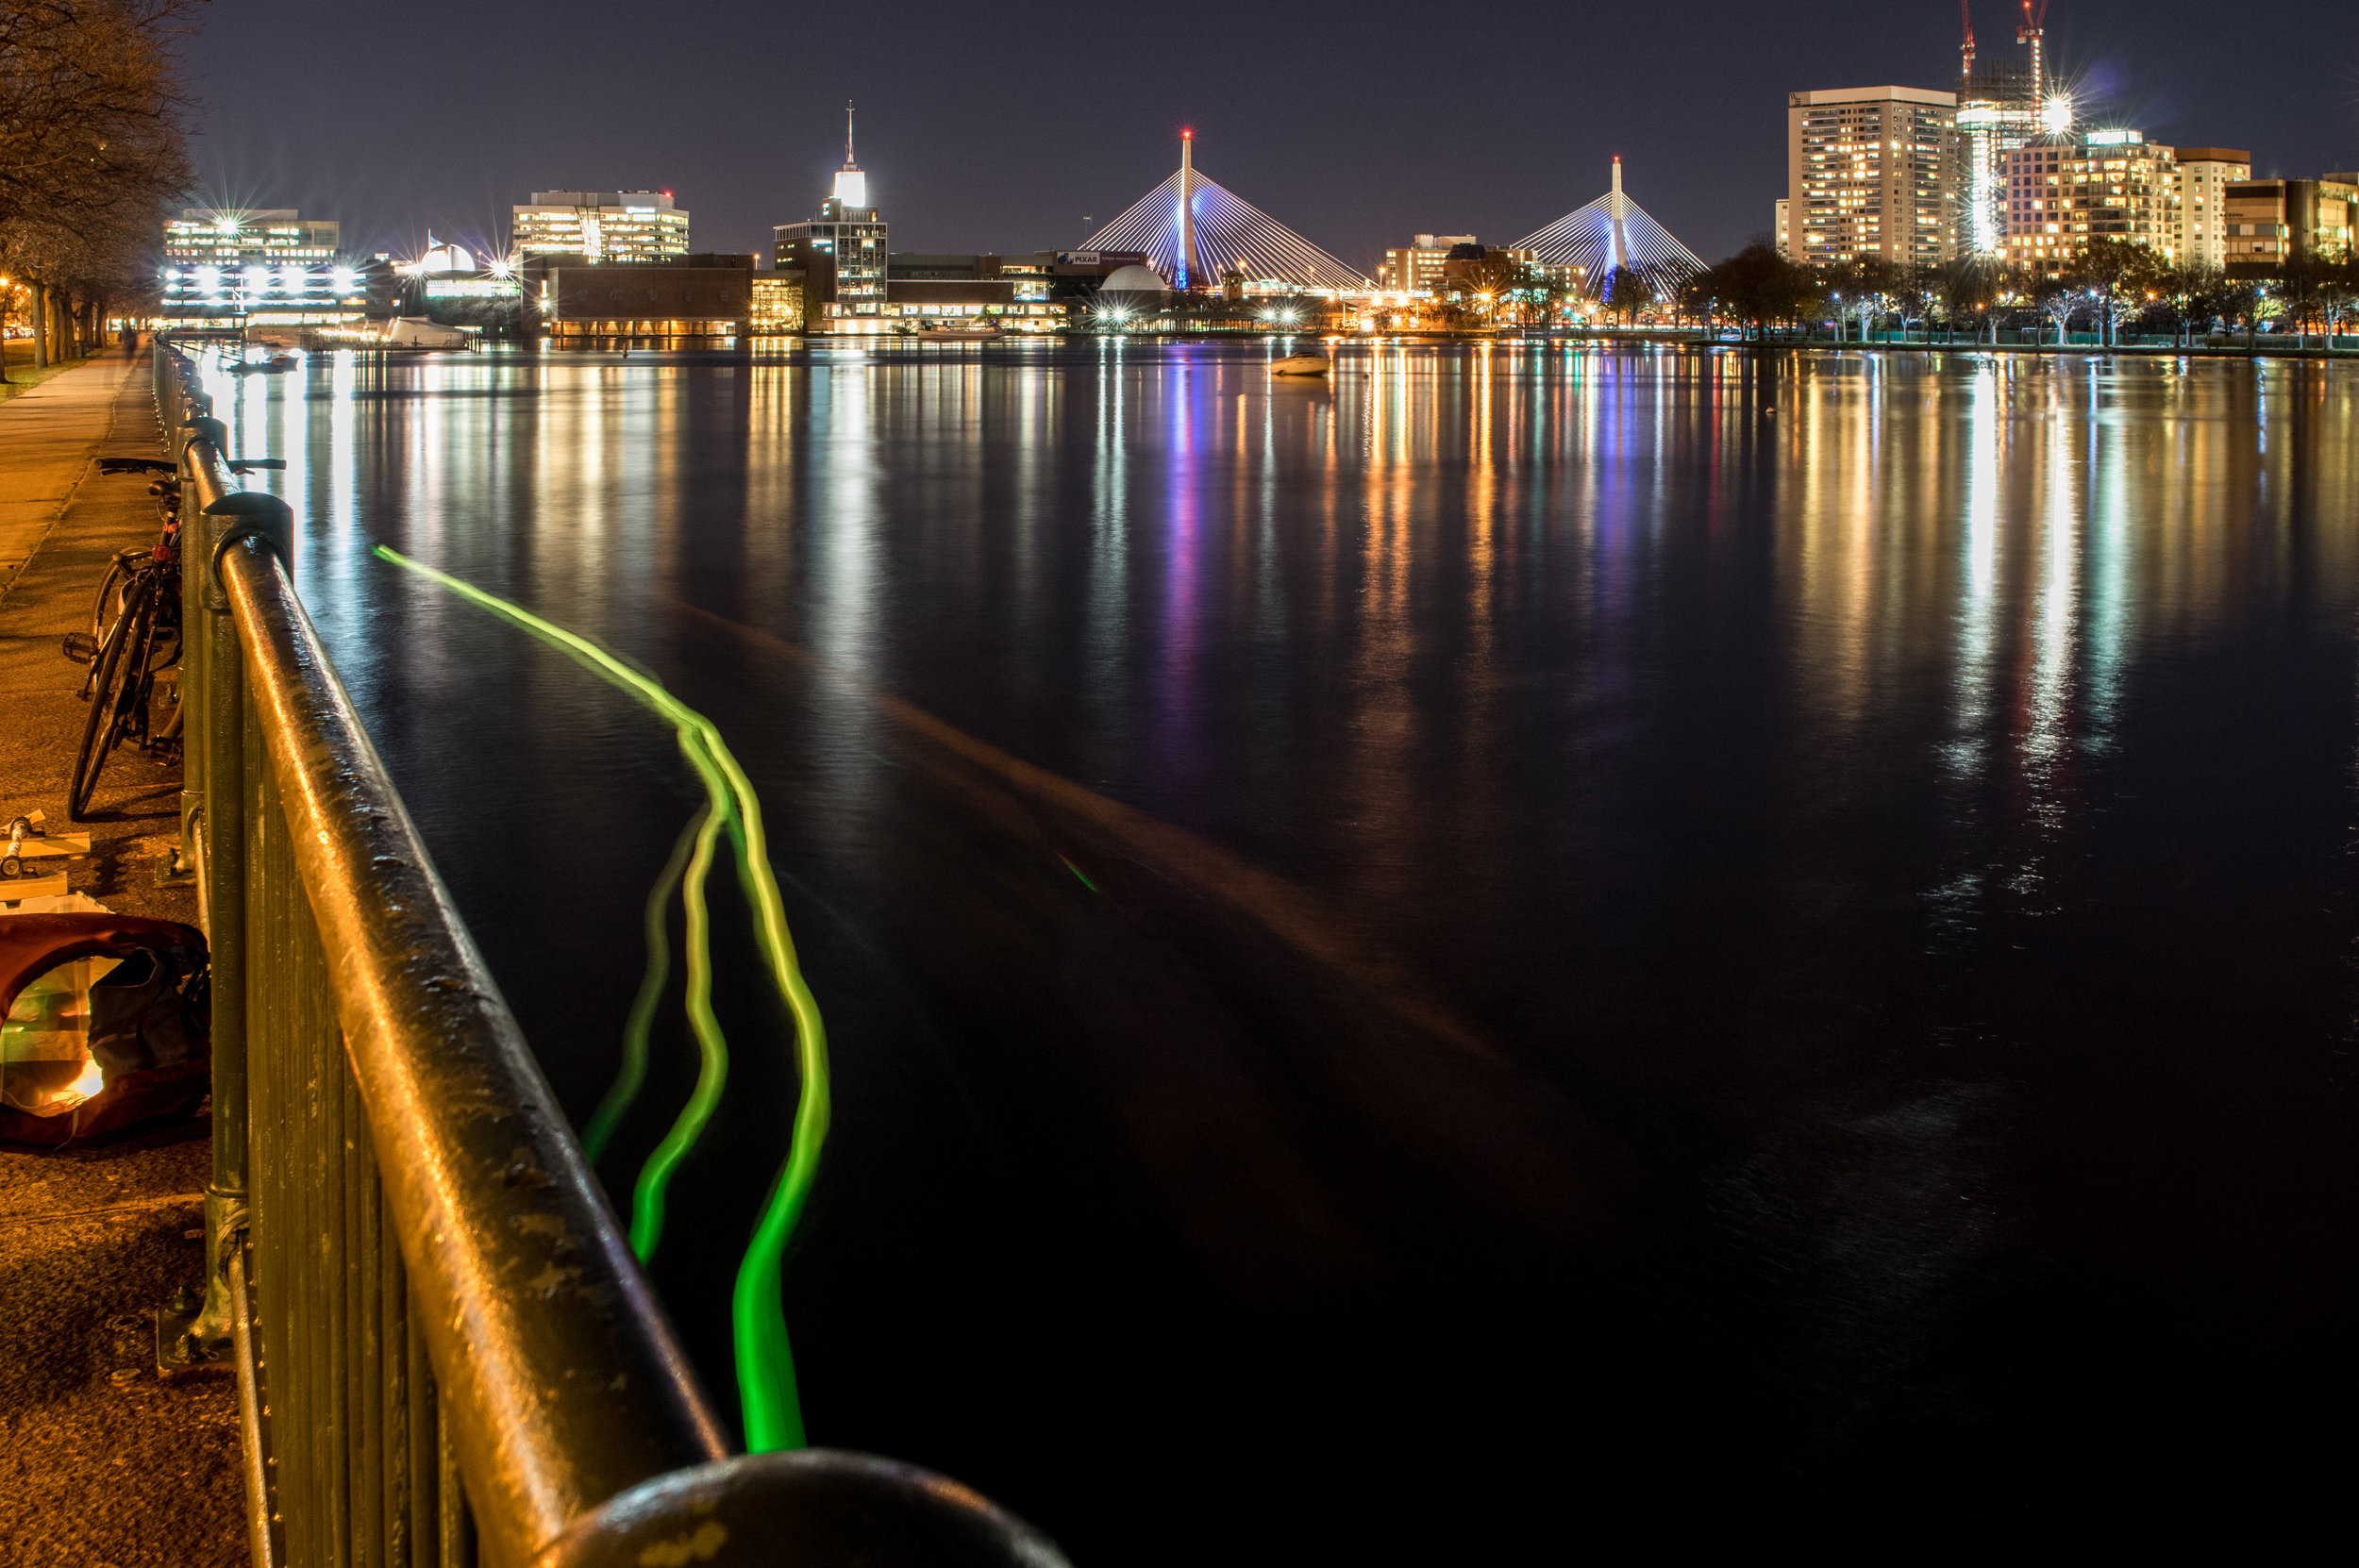 A long exposure image from an early SeeBoat test near the Kendall Cogeneration Station, November 20th, 2015. The change in color from green to yellow is tied to the temperature sensor readings and indicates a potential thermal pollution source near the outflow pipe. New infrastructure and protocols at the plant intended to eliminate thermal pollution were completed in 2016.  SeeBoat: Kendall Cogeneration Station, 2015 // project: Laura Perovich & collaborators // photo: Jorge Valdez